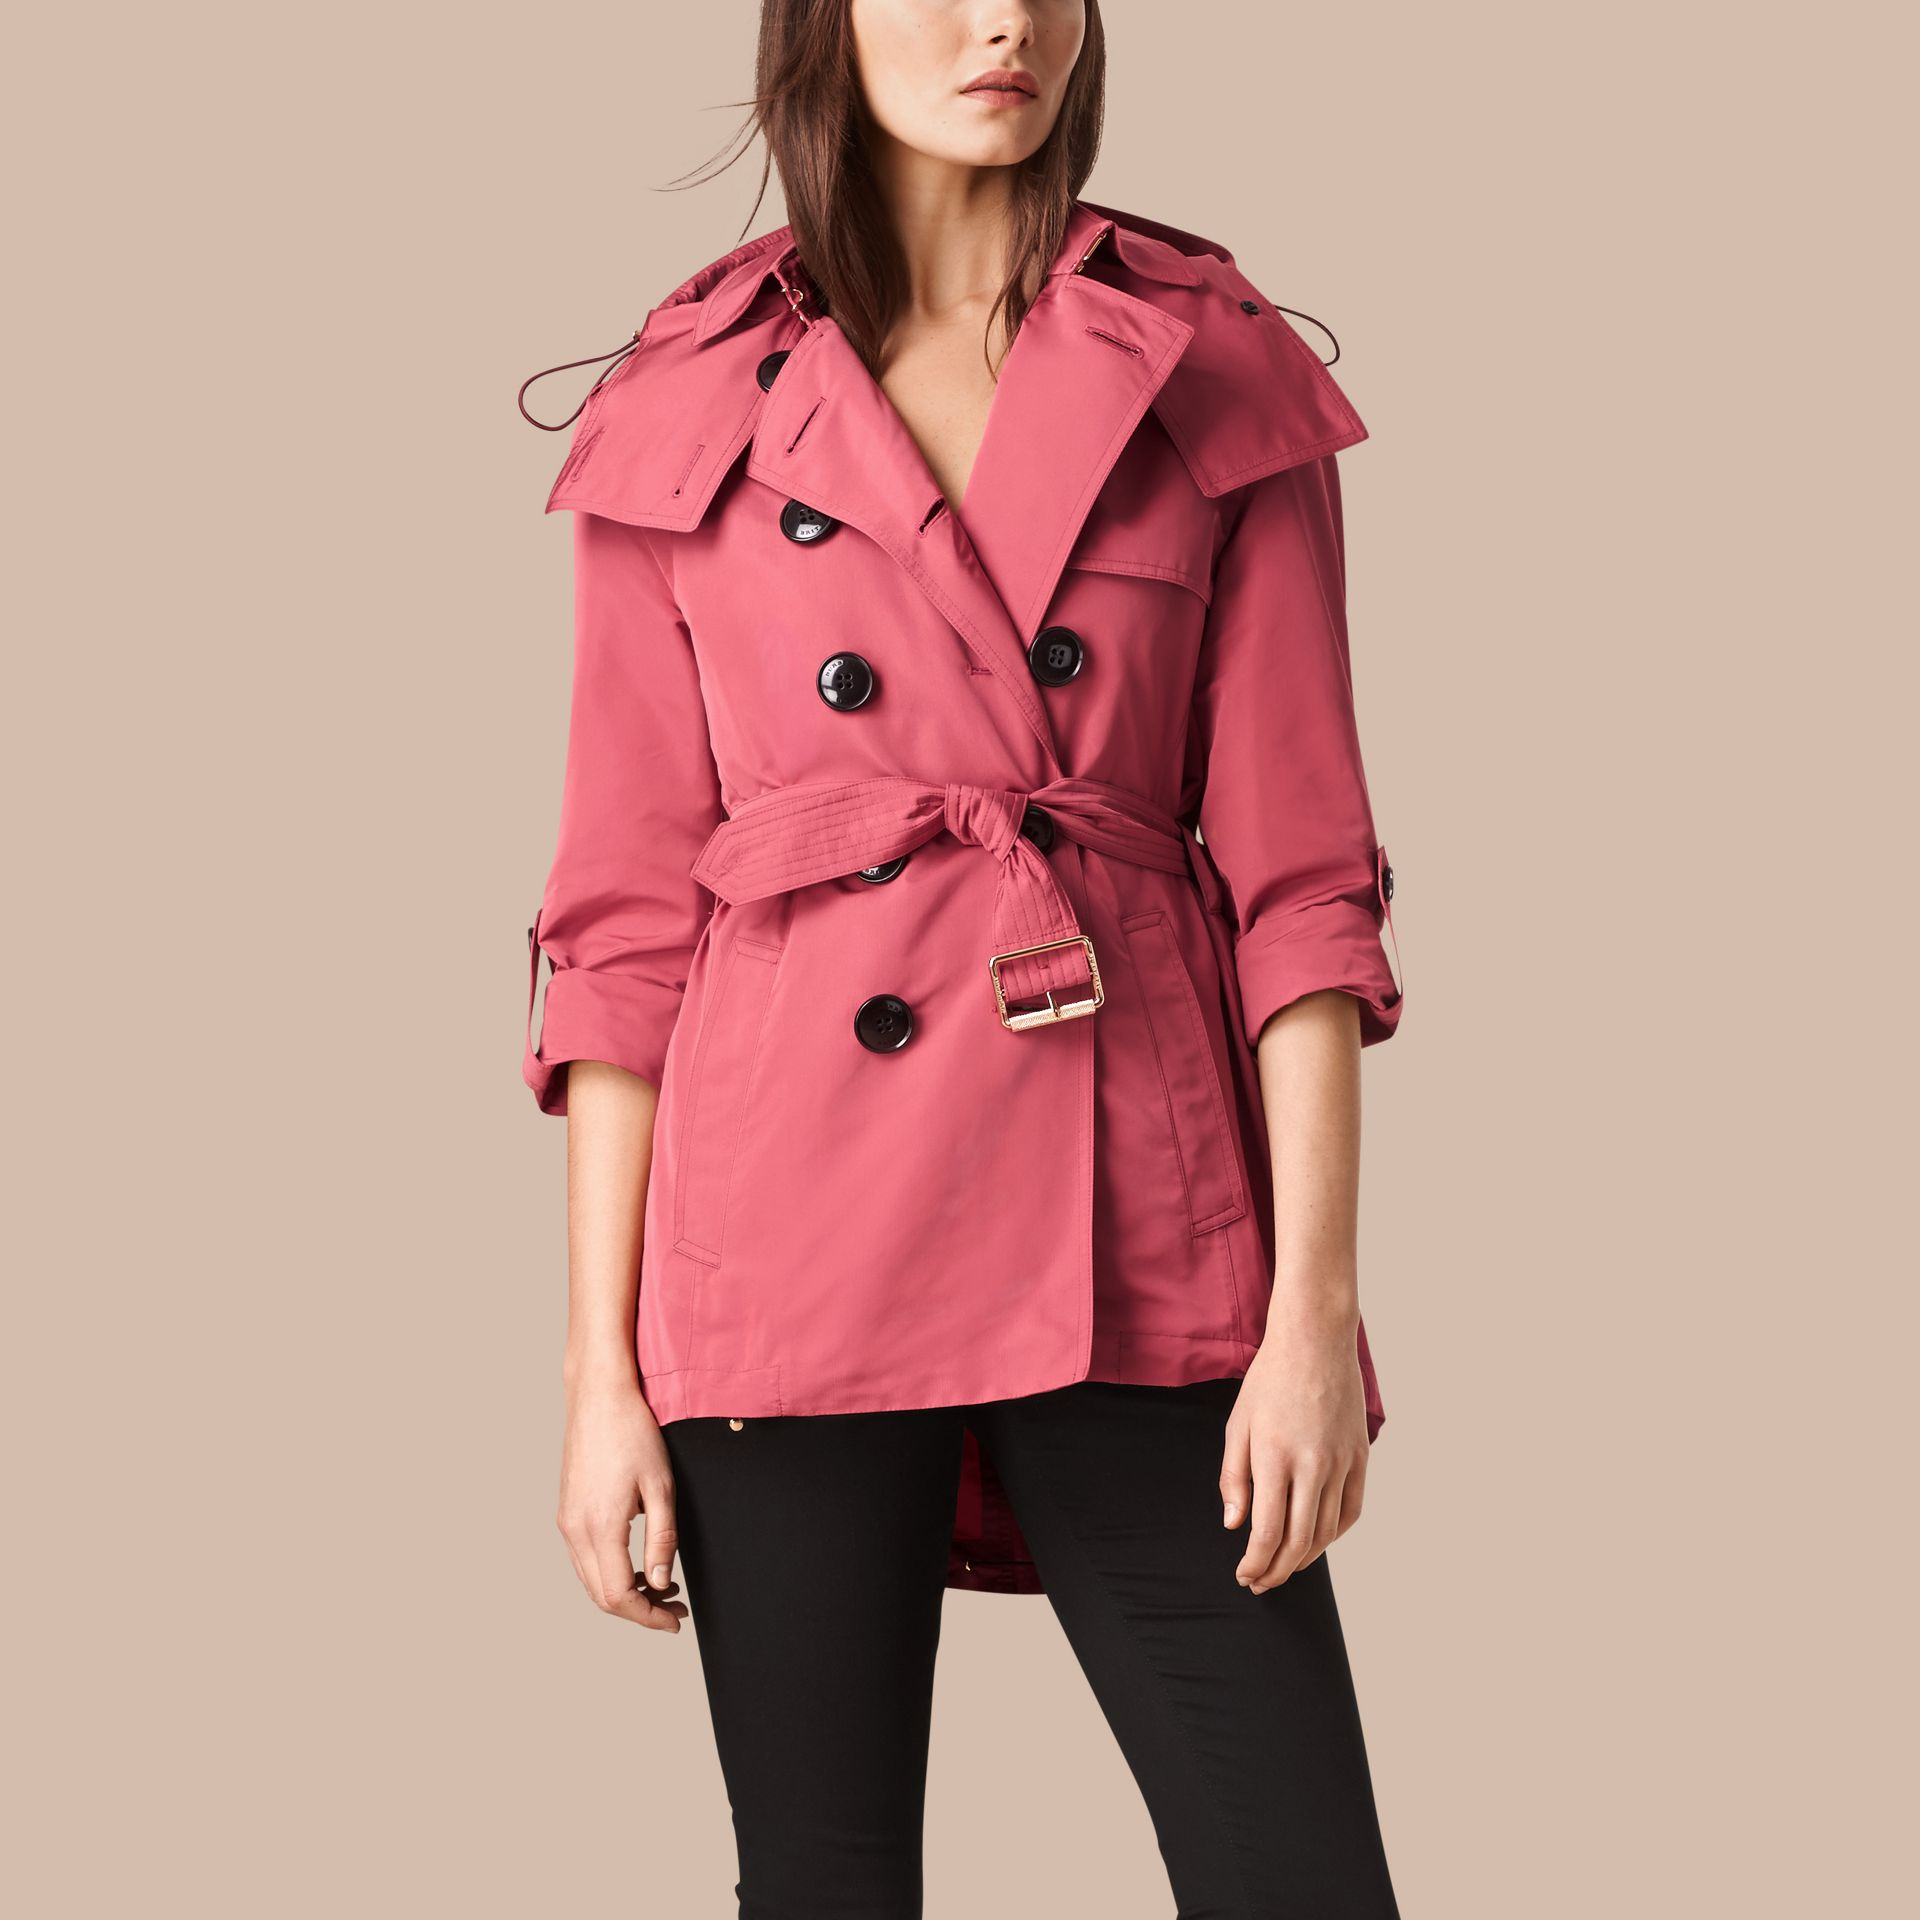 Bright copper pink Showerproof Trench Coat with Detachable Hood Bright Copper Pink - gallery image 5